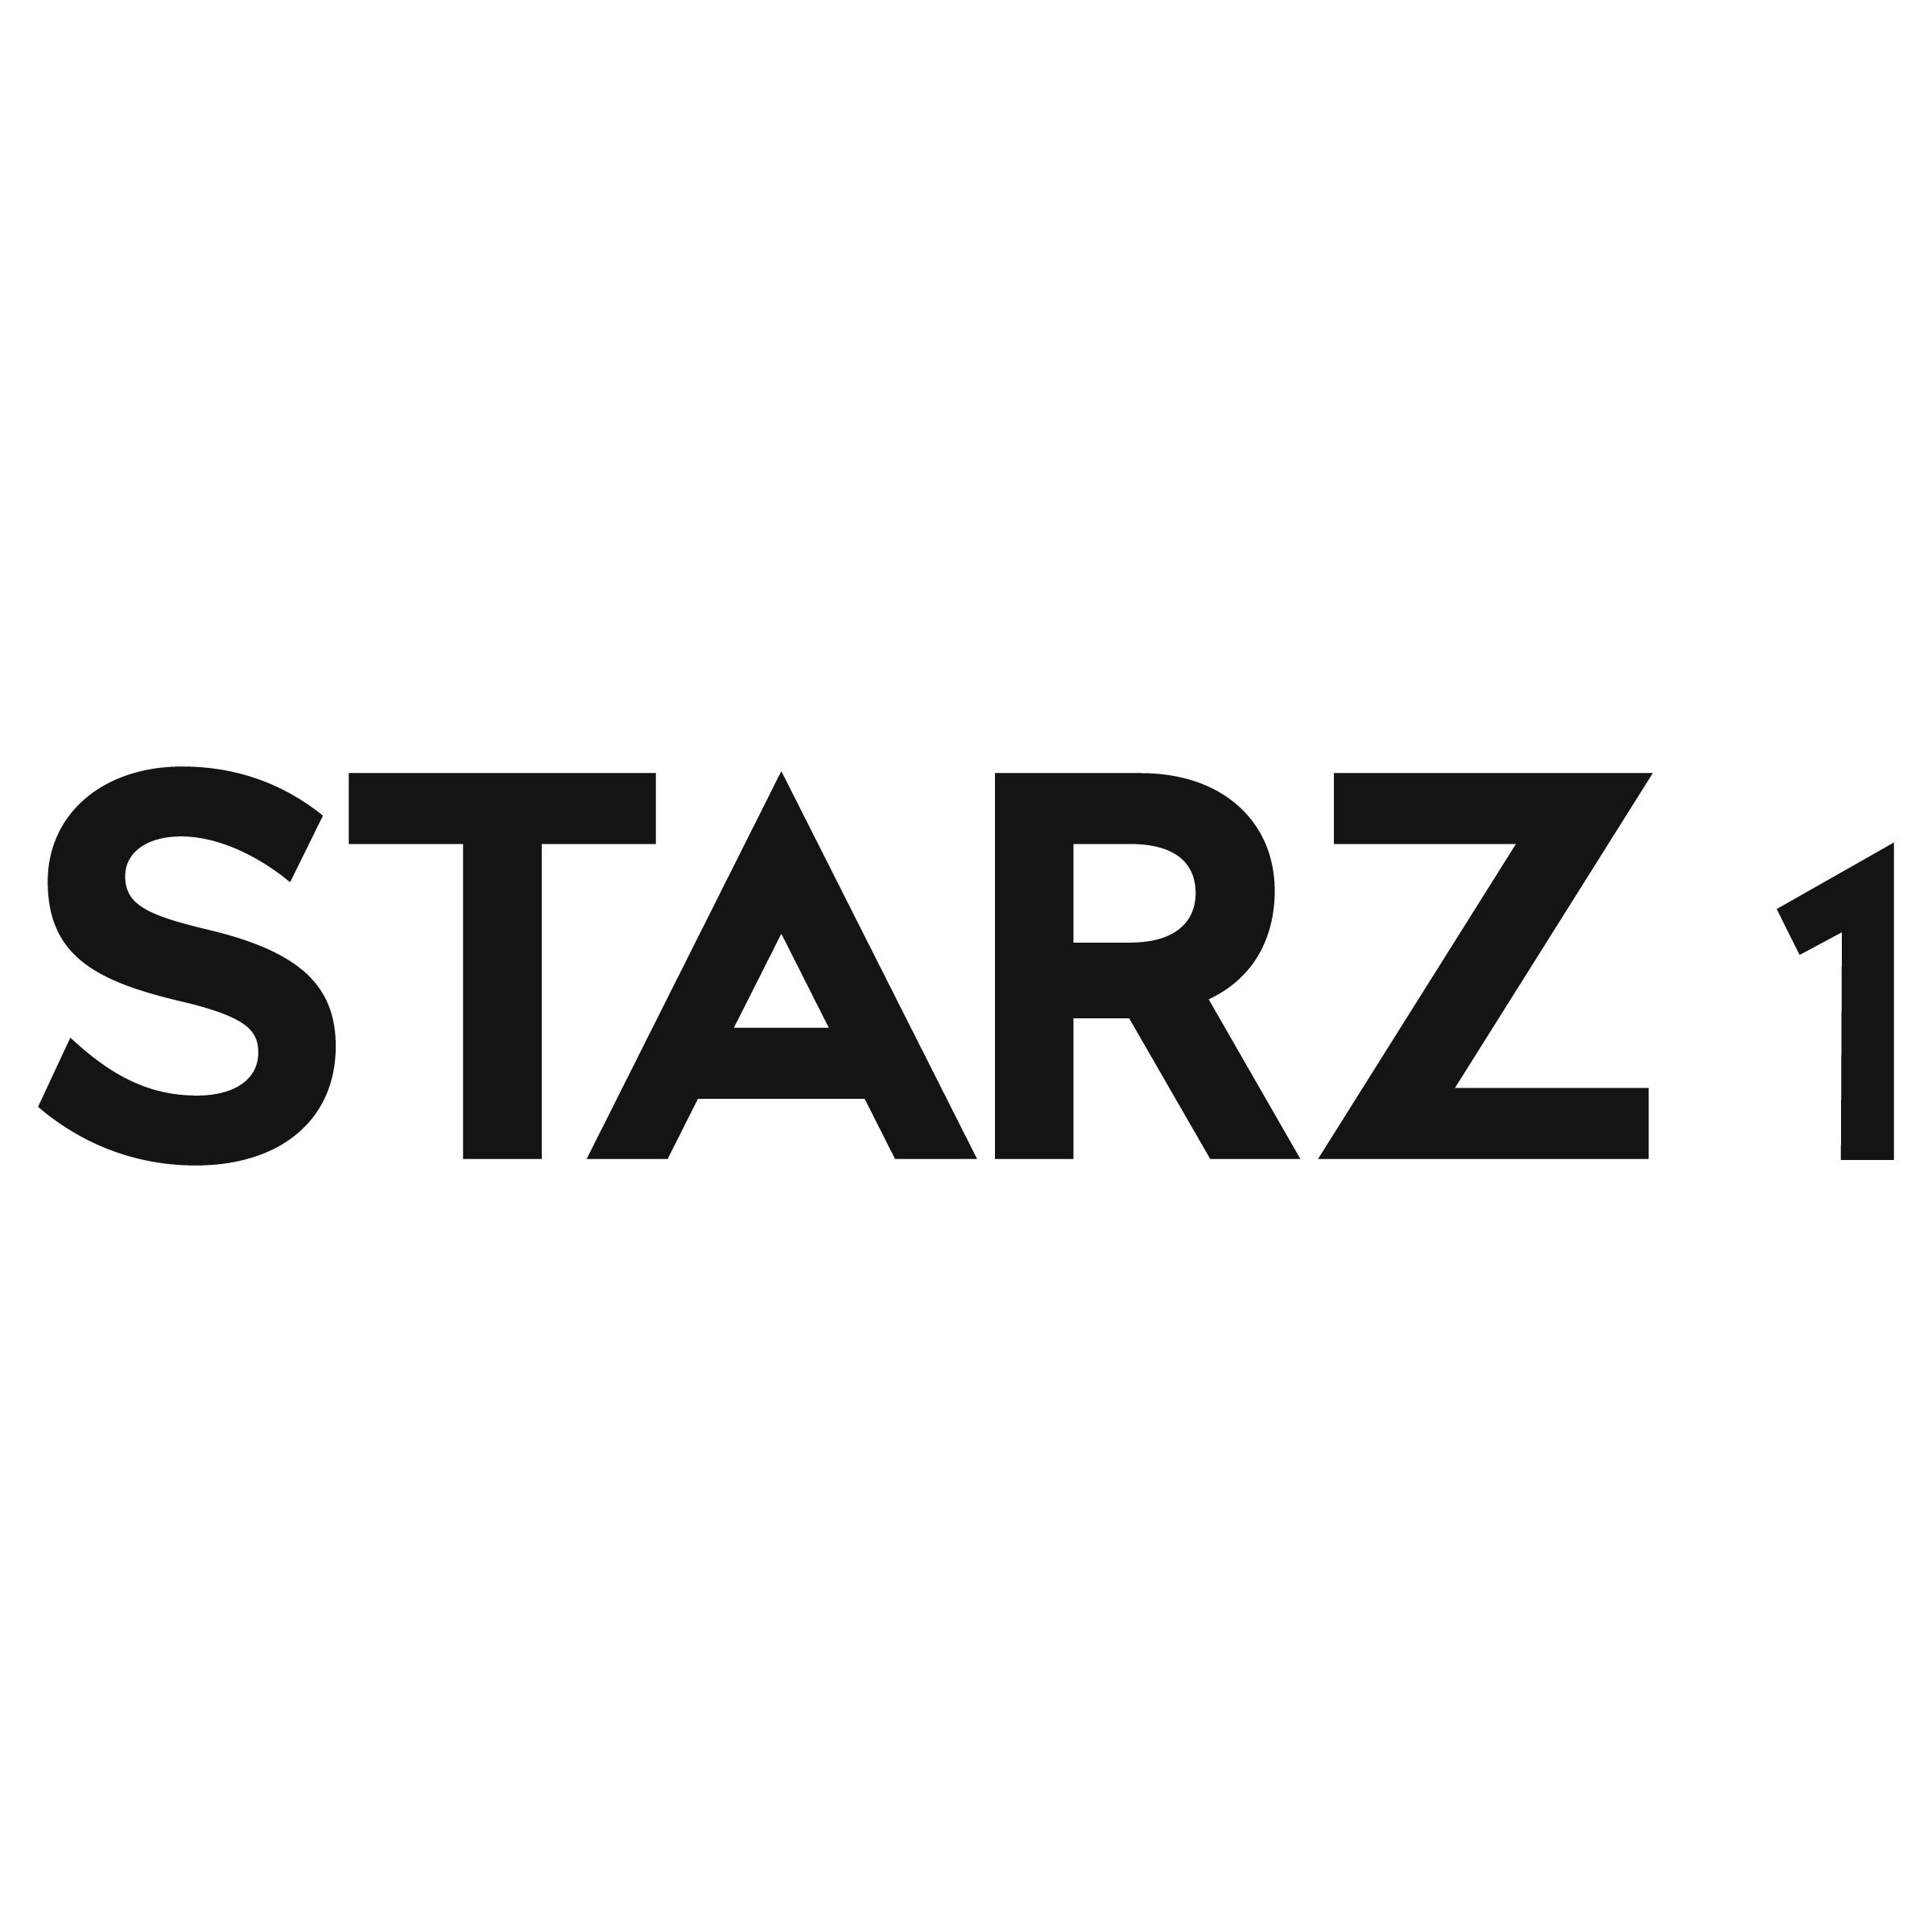 STARZ 1 HD (EAST) - TV Listings Guide